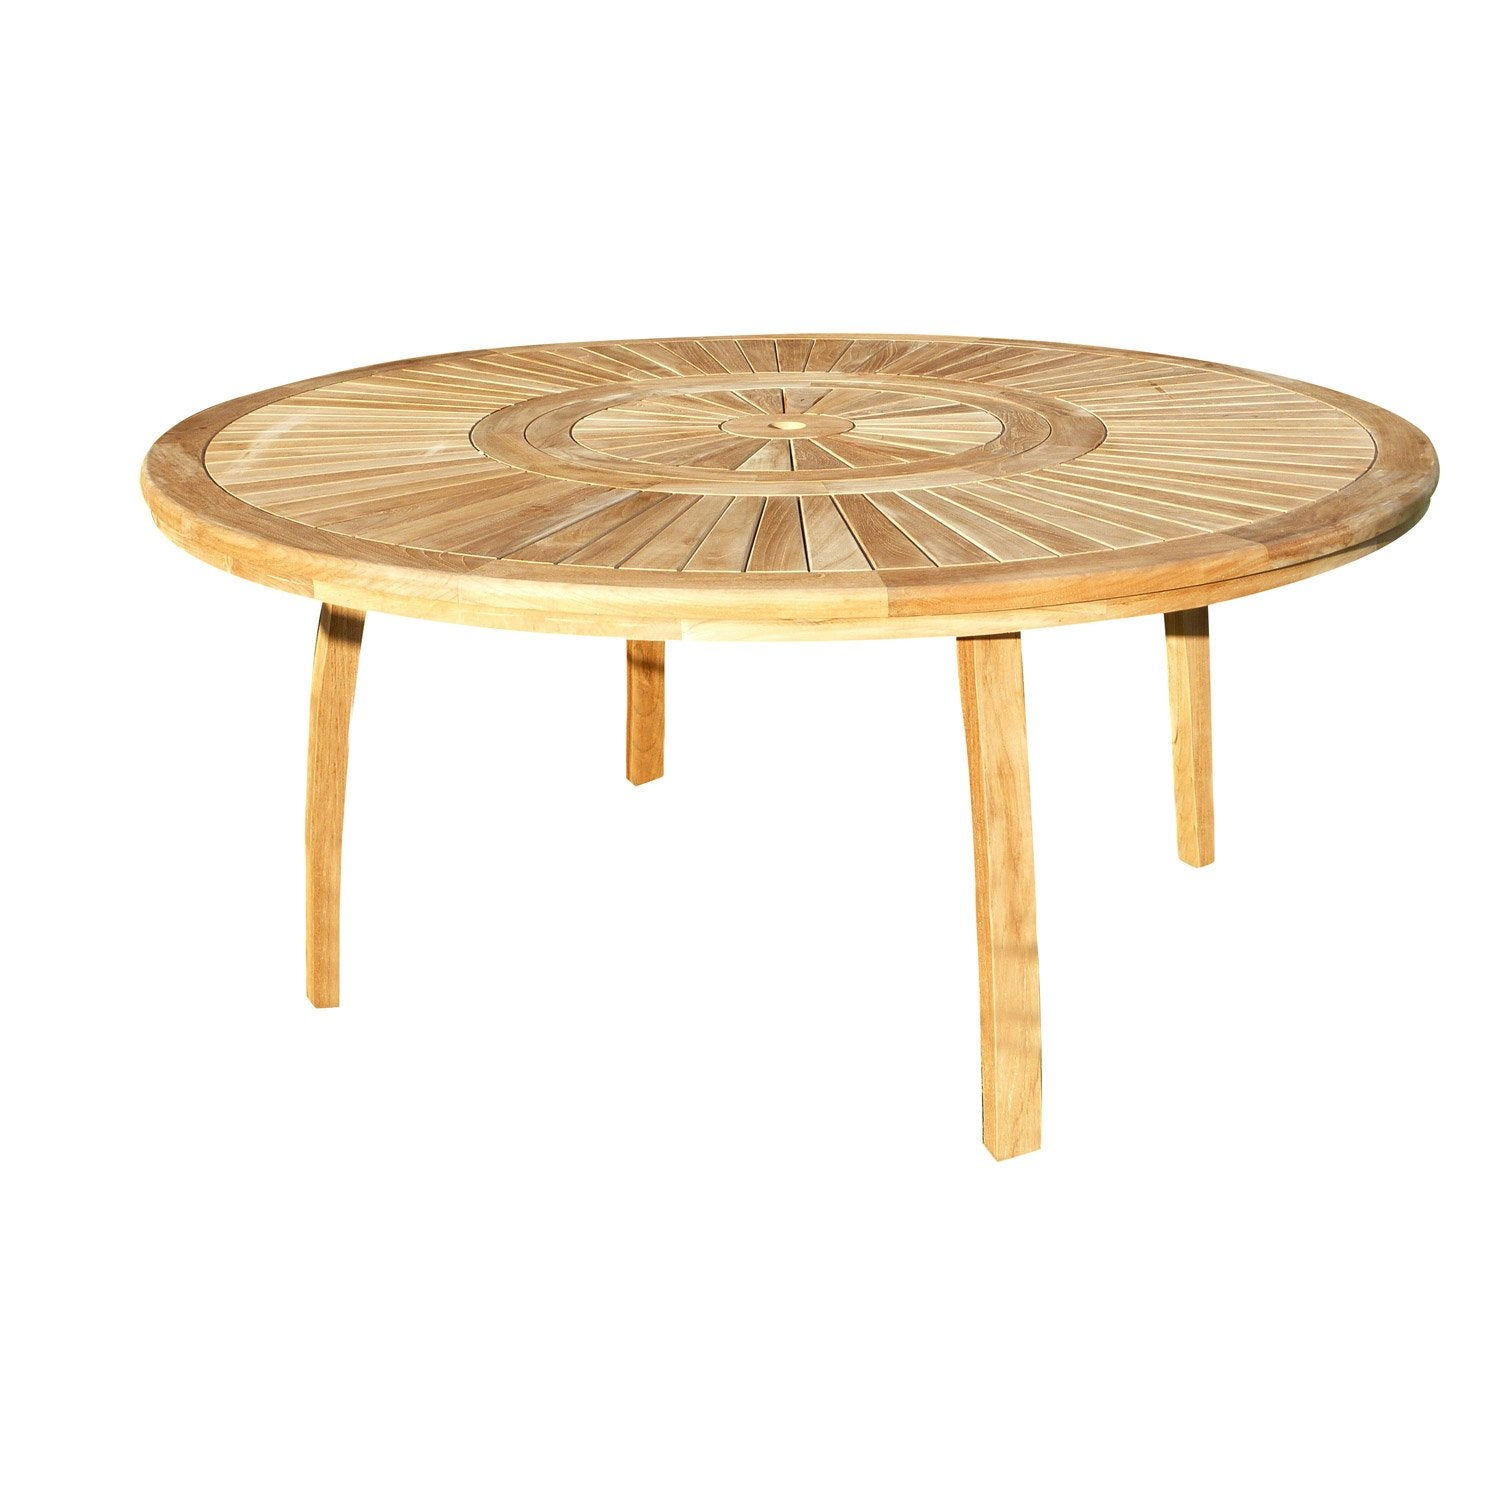 Table de jardin orion ronde naturel 8 personnes leroy merlin for Table 8 personnes